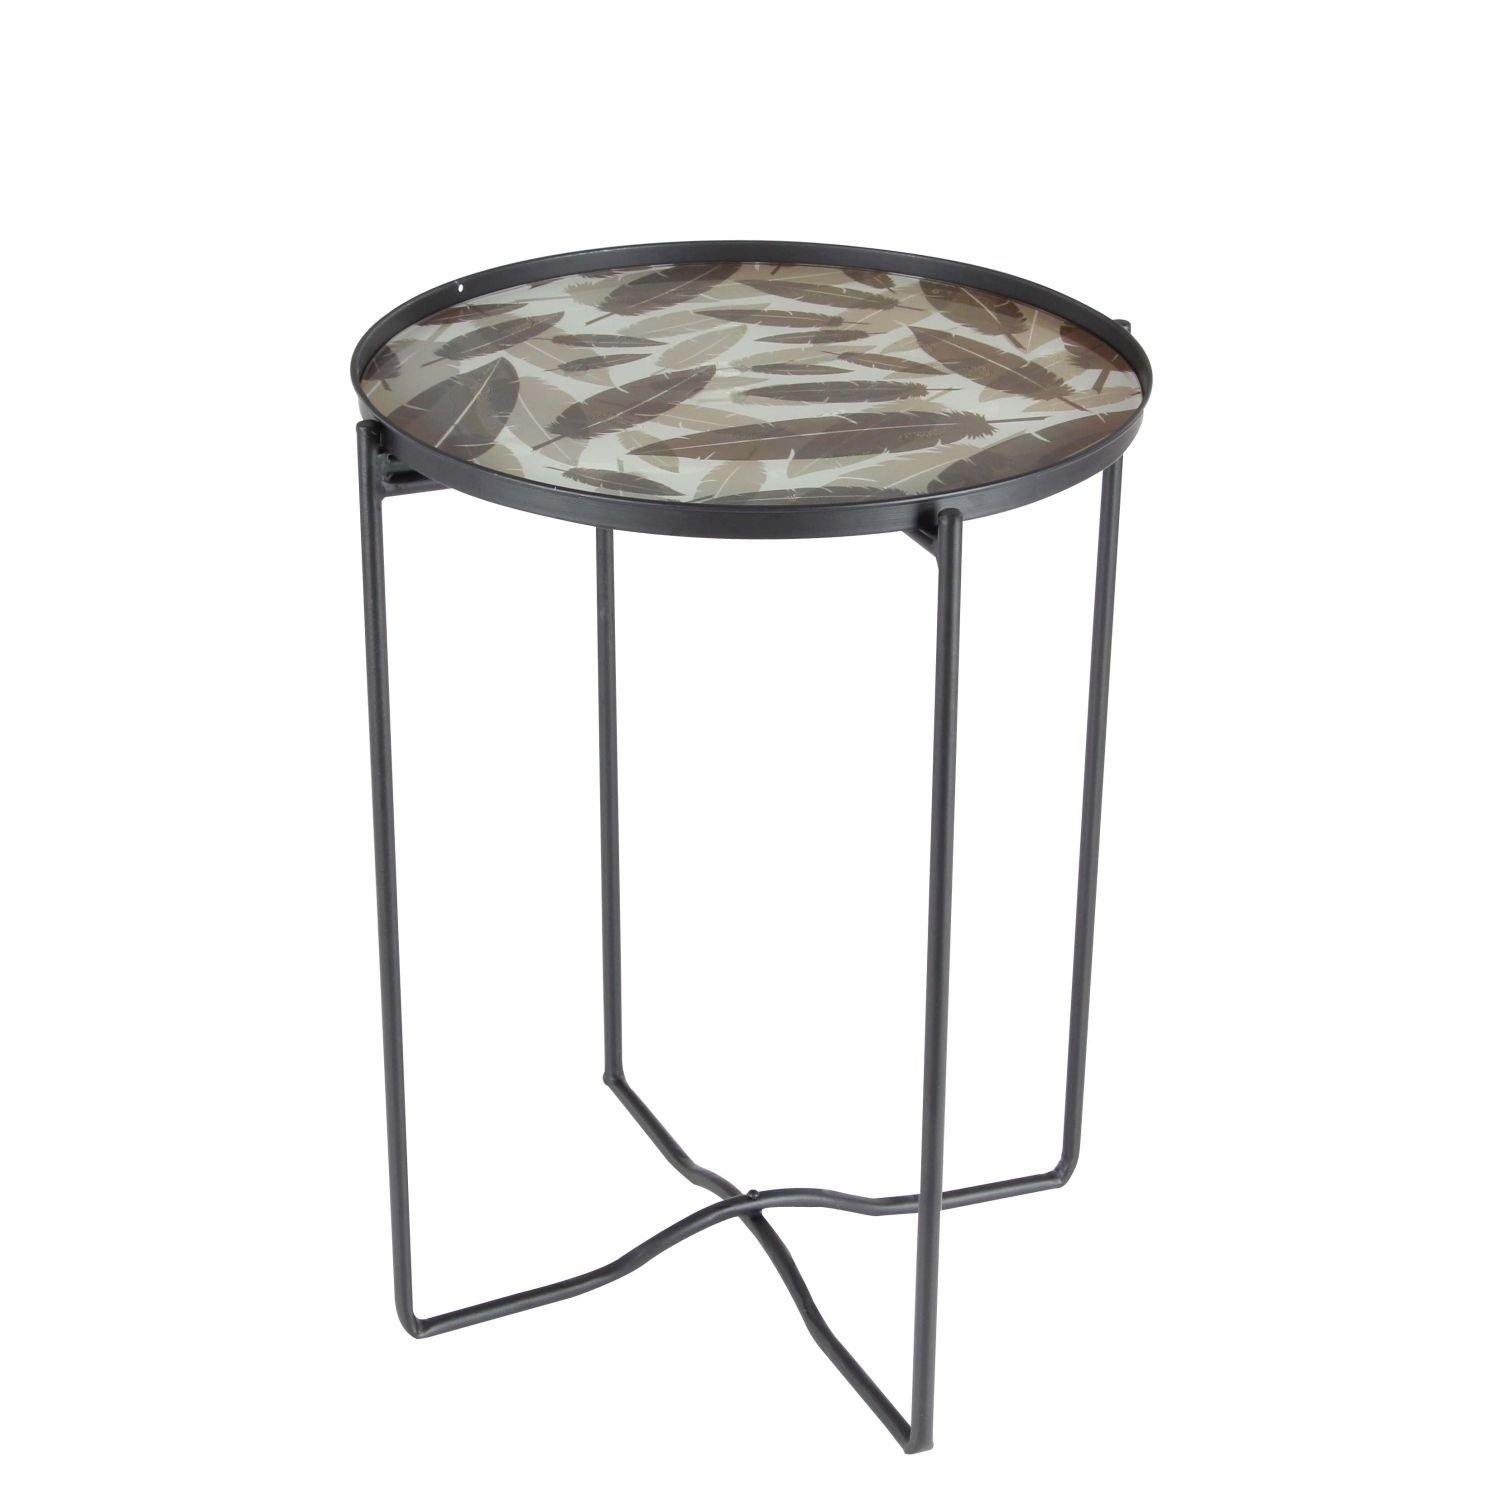 studio metal glass accent table inches wide high free shipping today round coffee cover tall marble side diy bar entryway cabinet shoe organizer target bedroom furniture packages